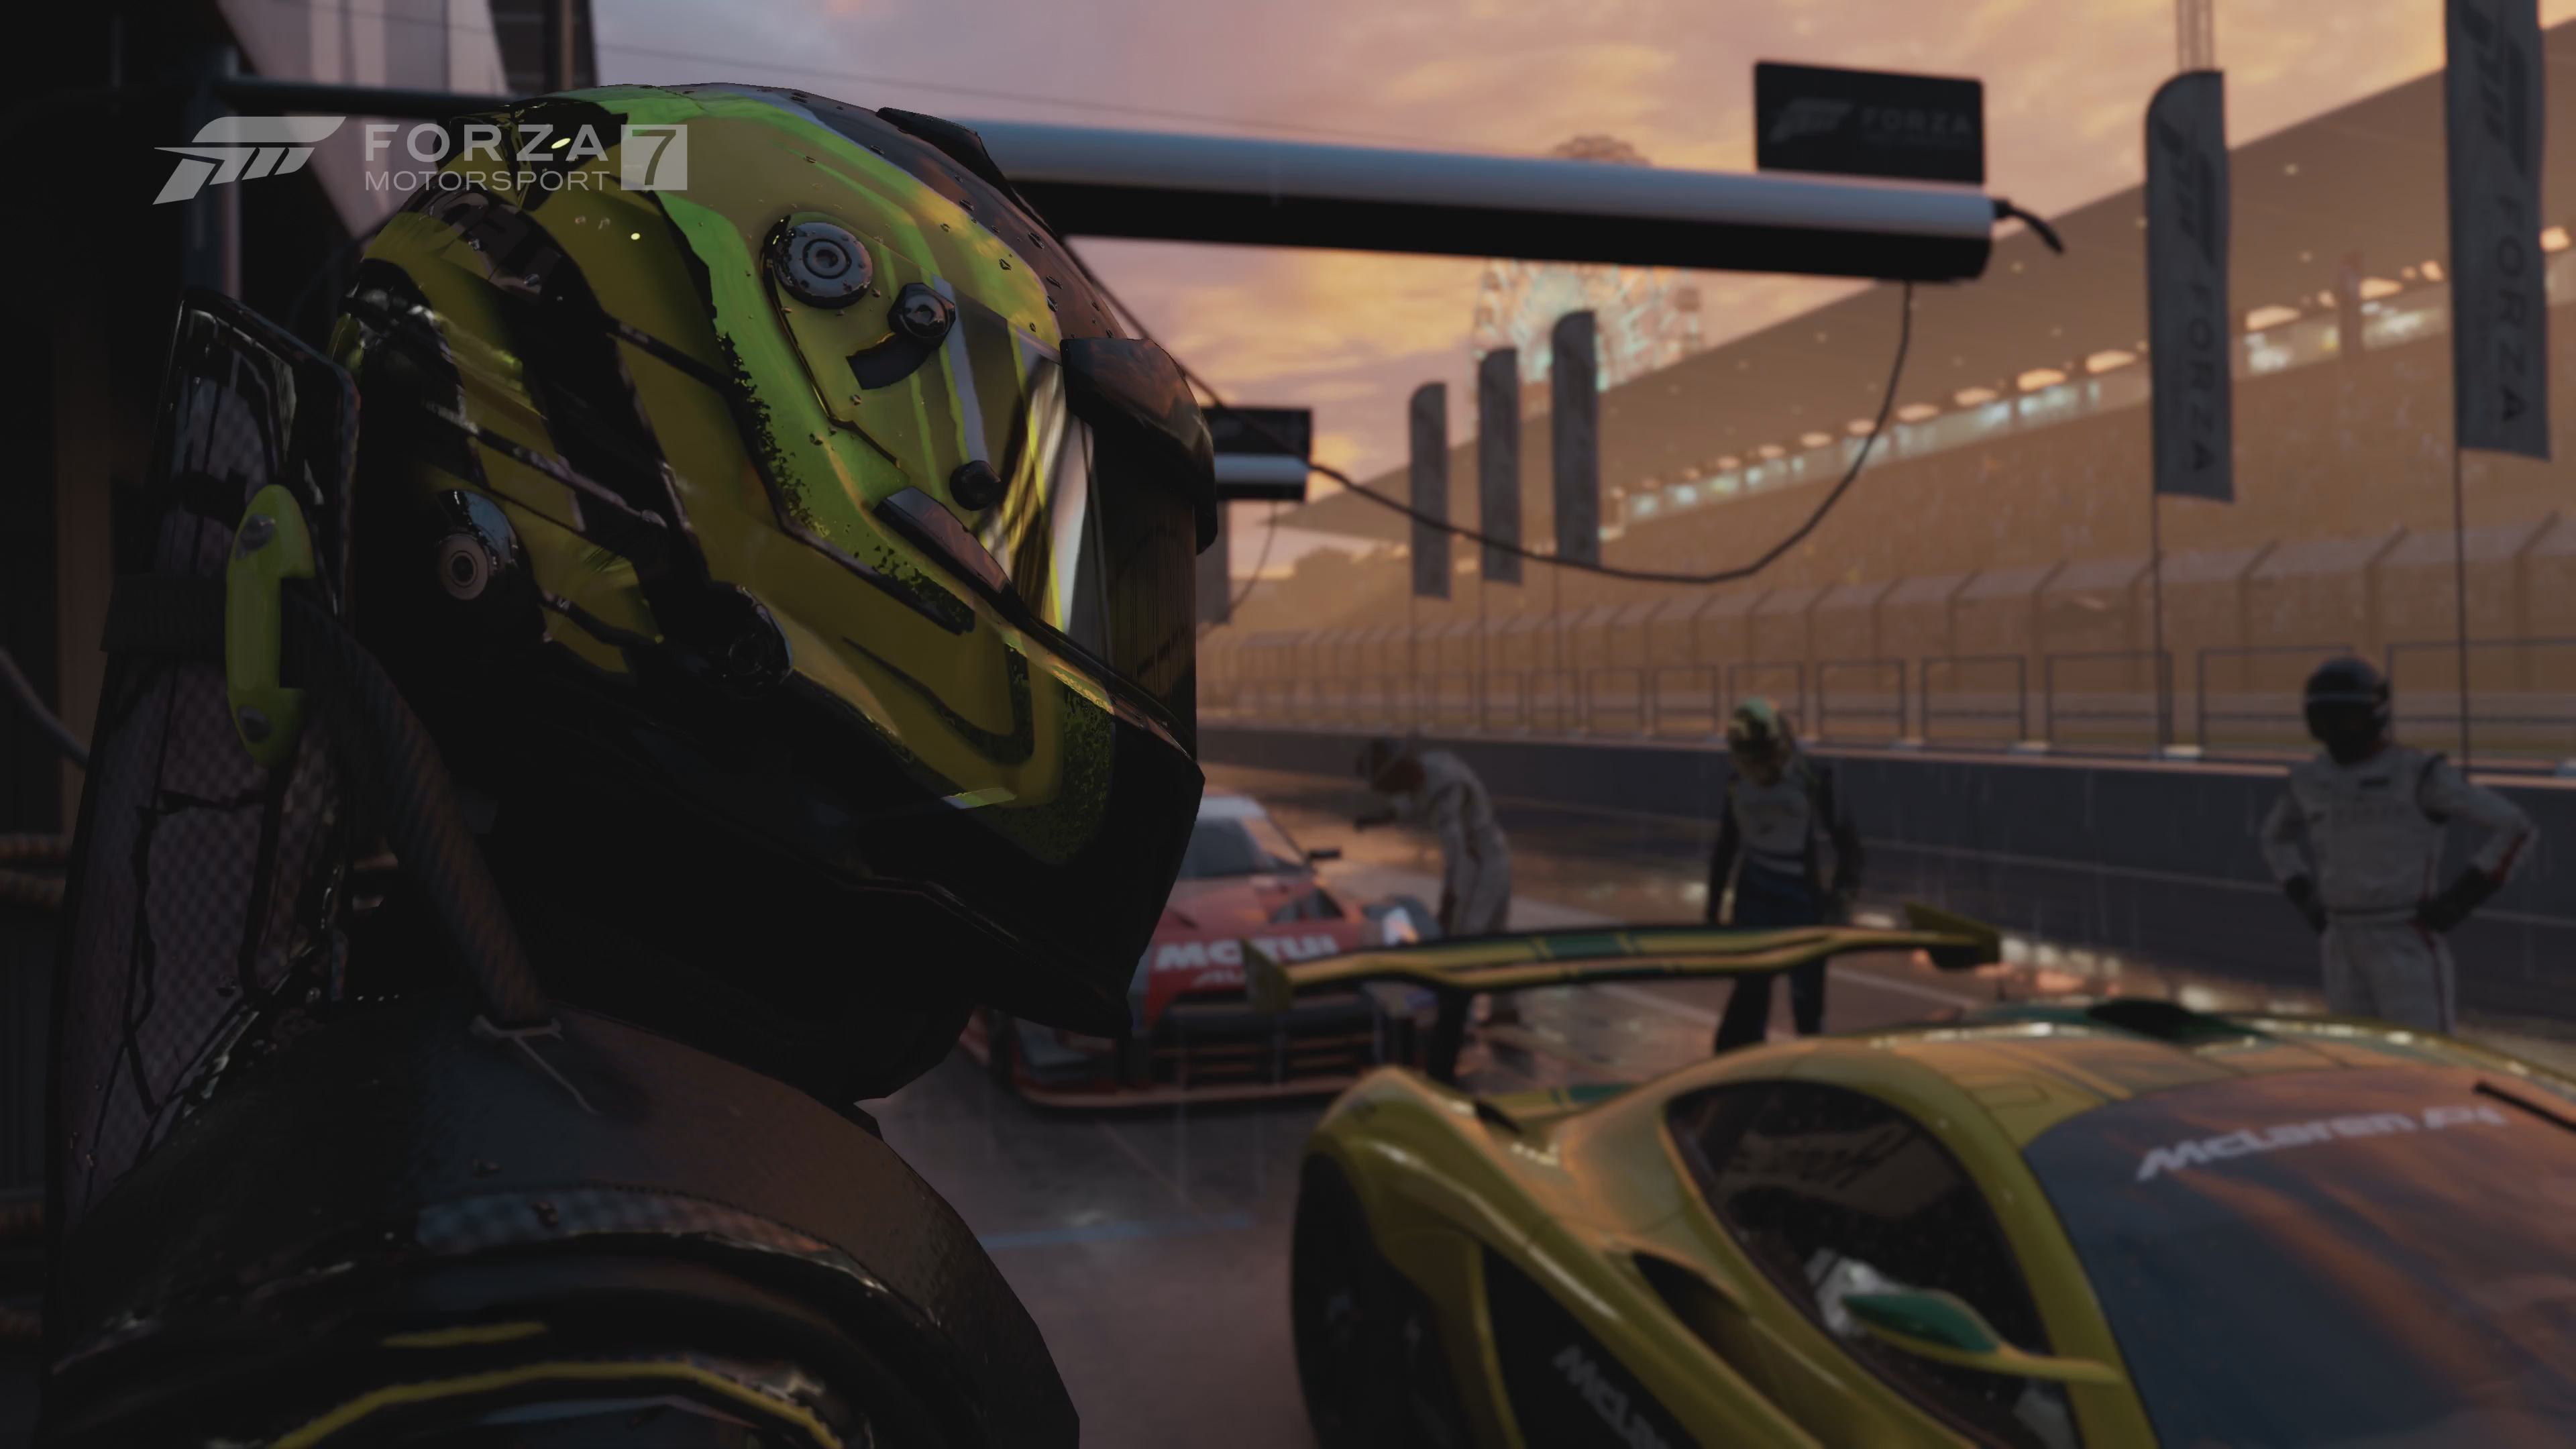 Forza Motorsport 7 Wallpapers Ultra Hd Gaming Backgrounds: Forza Motorsport 7 Wallpapers, Pictures, Images